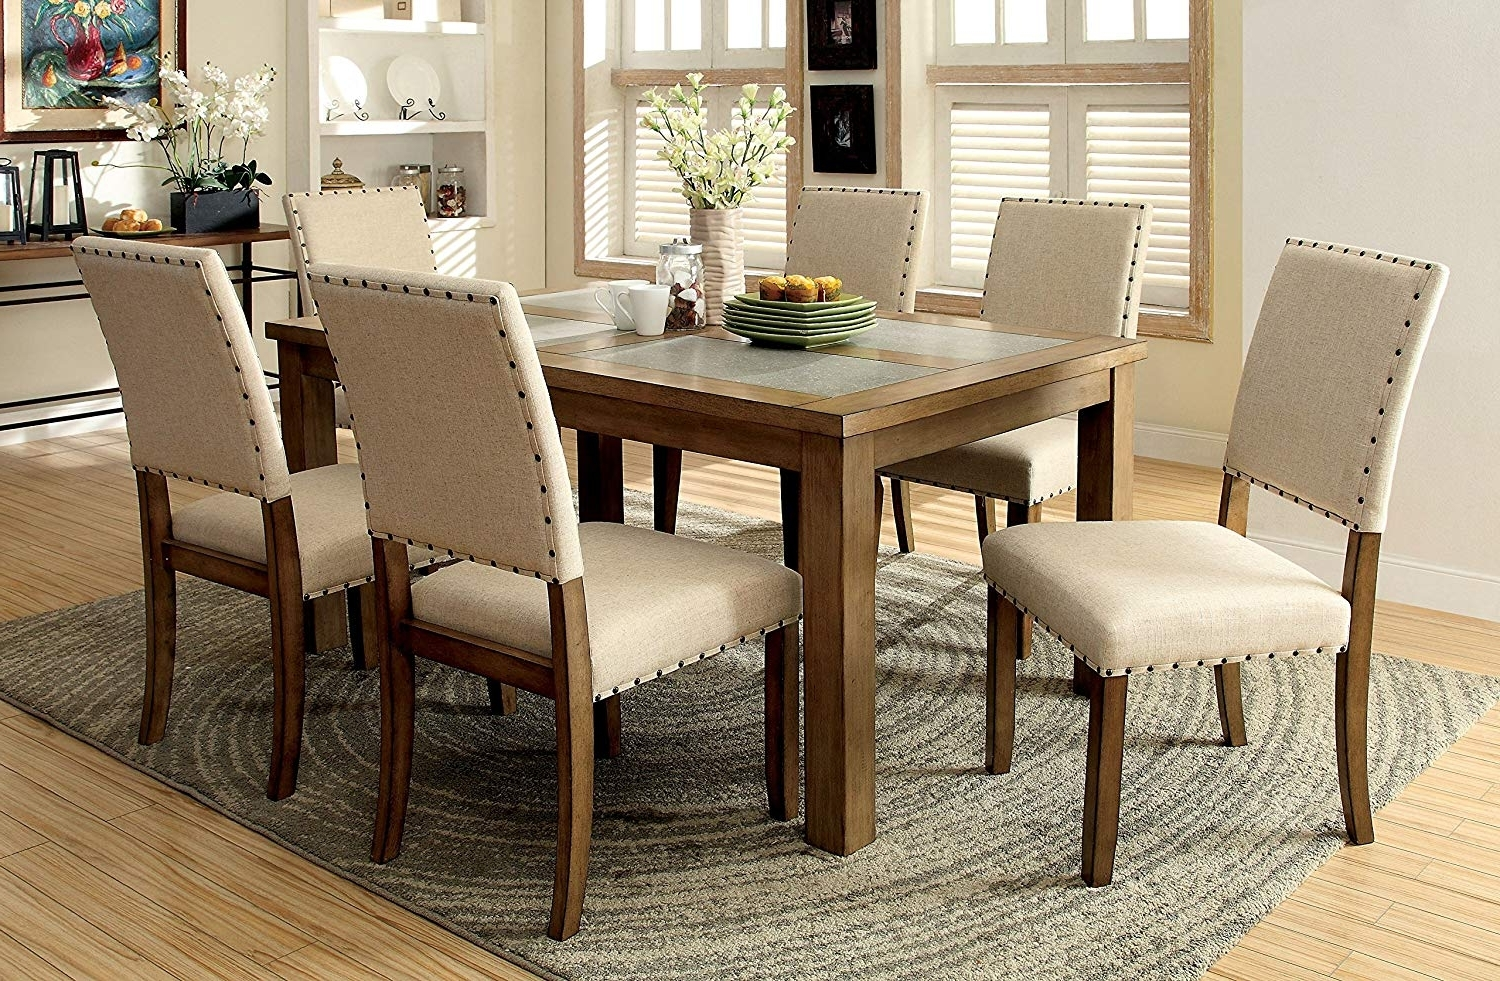 Widely Used Valencia 3 Piece Counter Sets With Bench Throughout Amazon – Furniture Of America Lucena 7 Piece Transitional Dining (View 17 of 25)